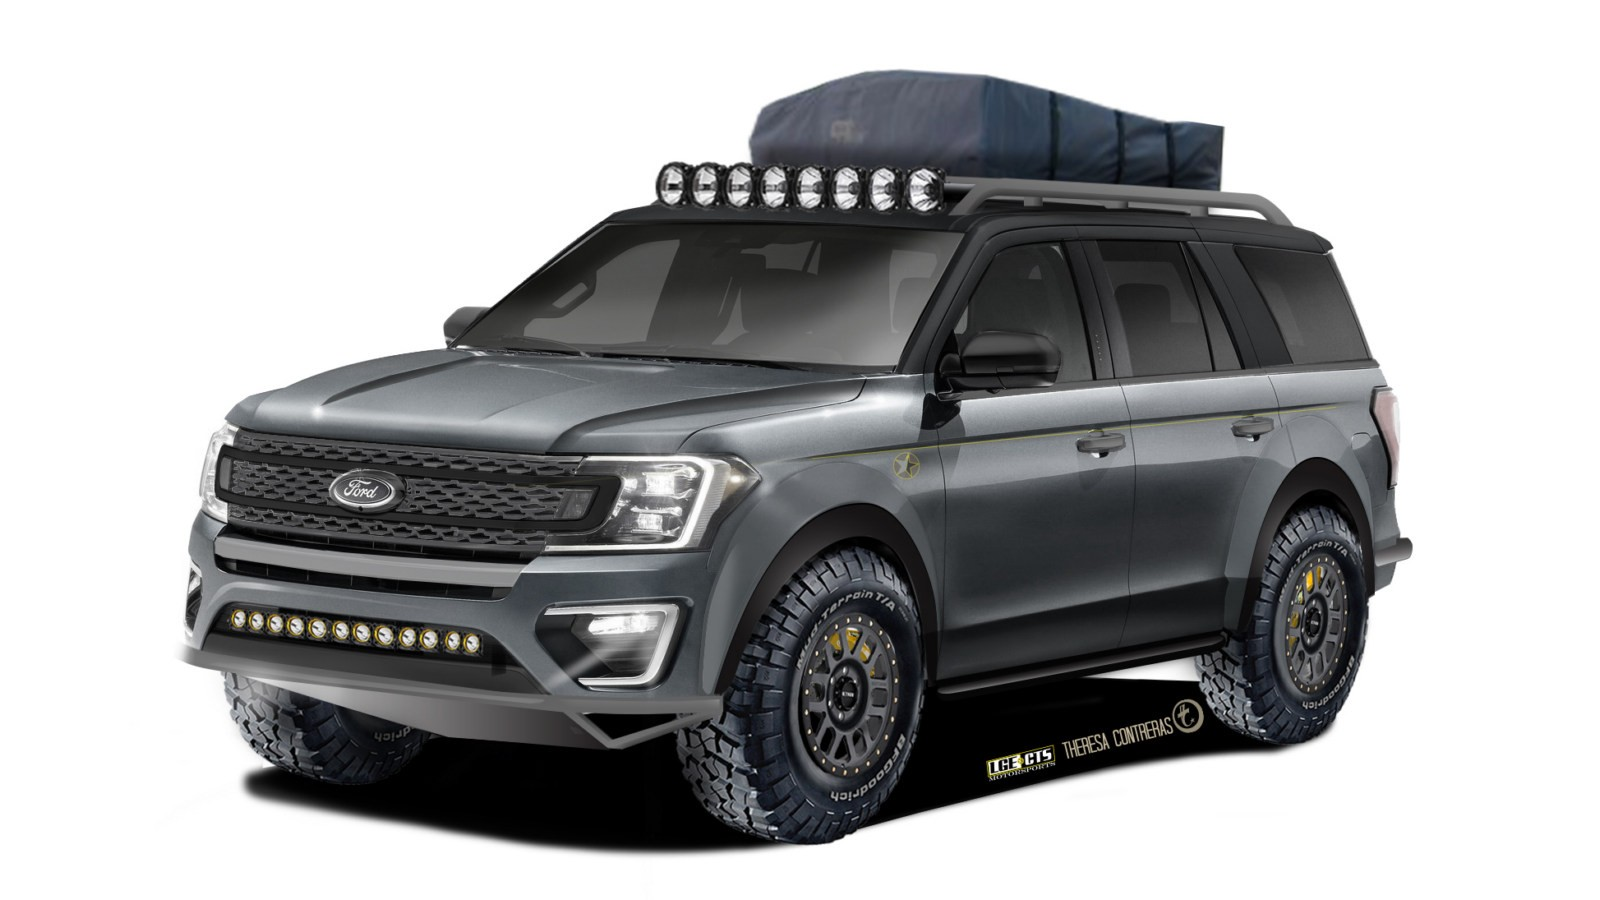 2018 Ford Expedition XLT created by LGE-CTS Motorsports